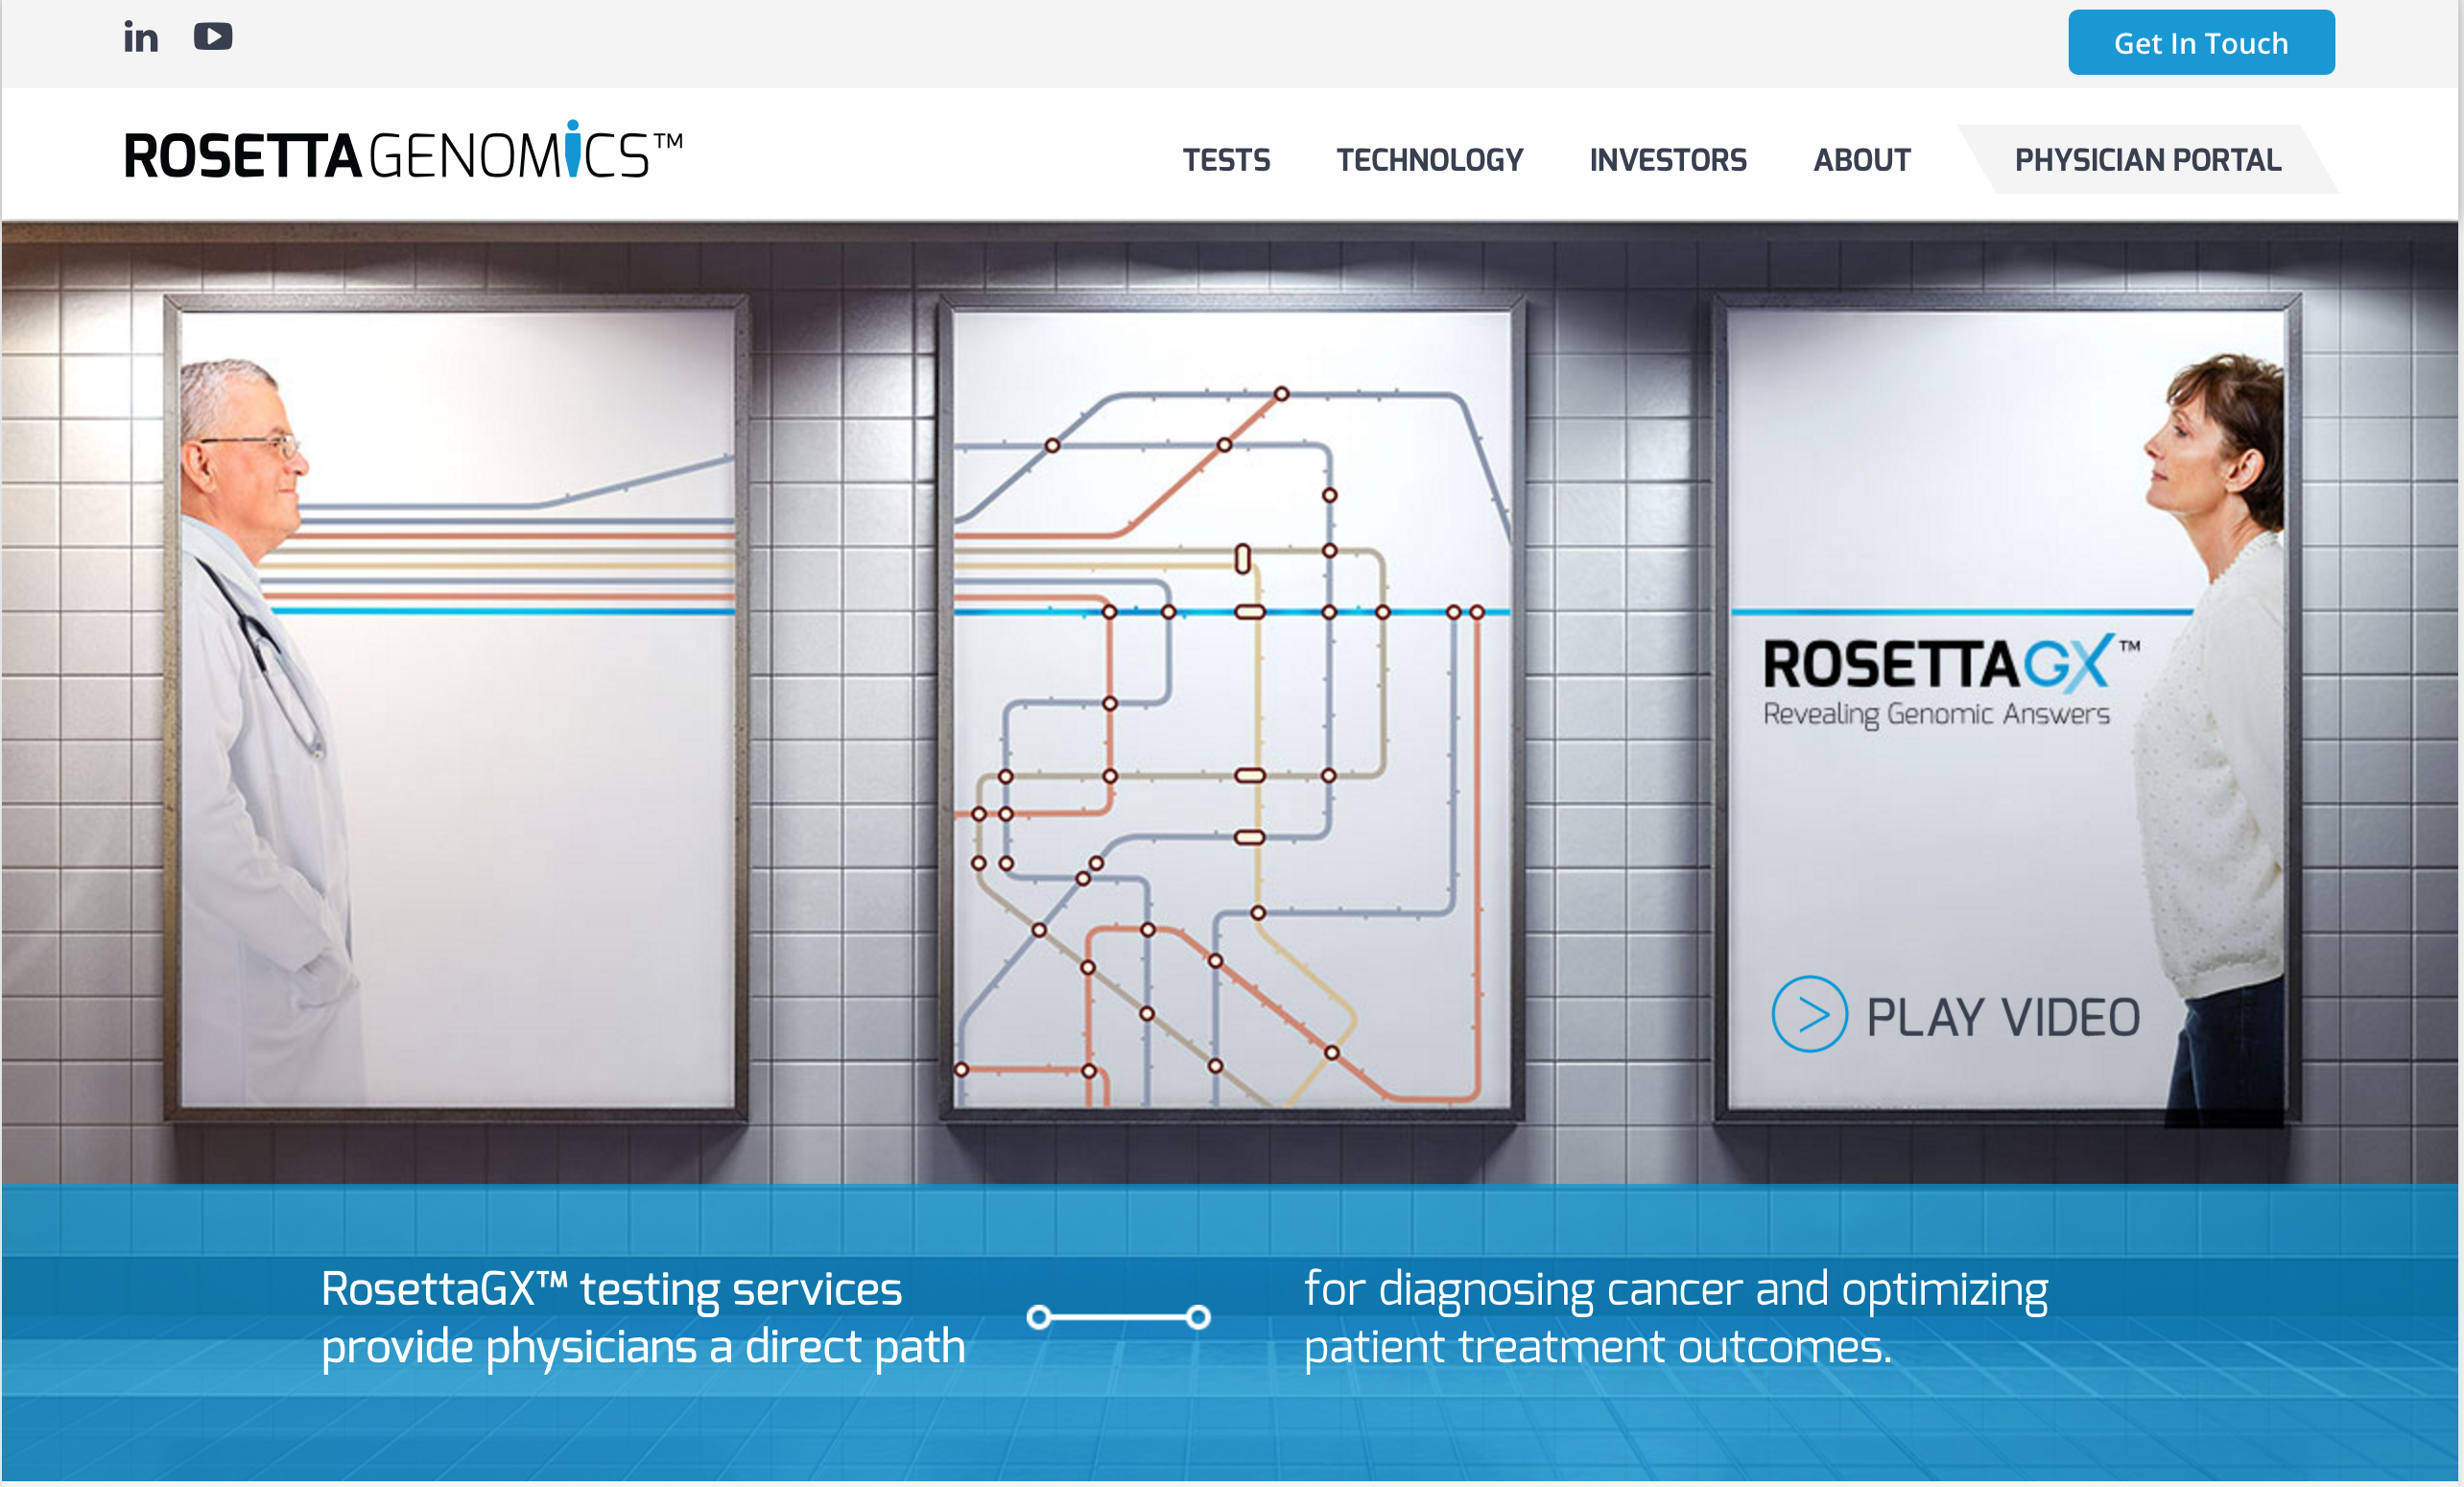 Rosetta Genomics Re-Branding